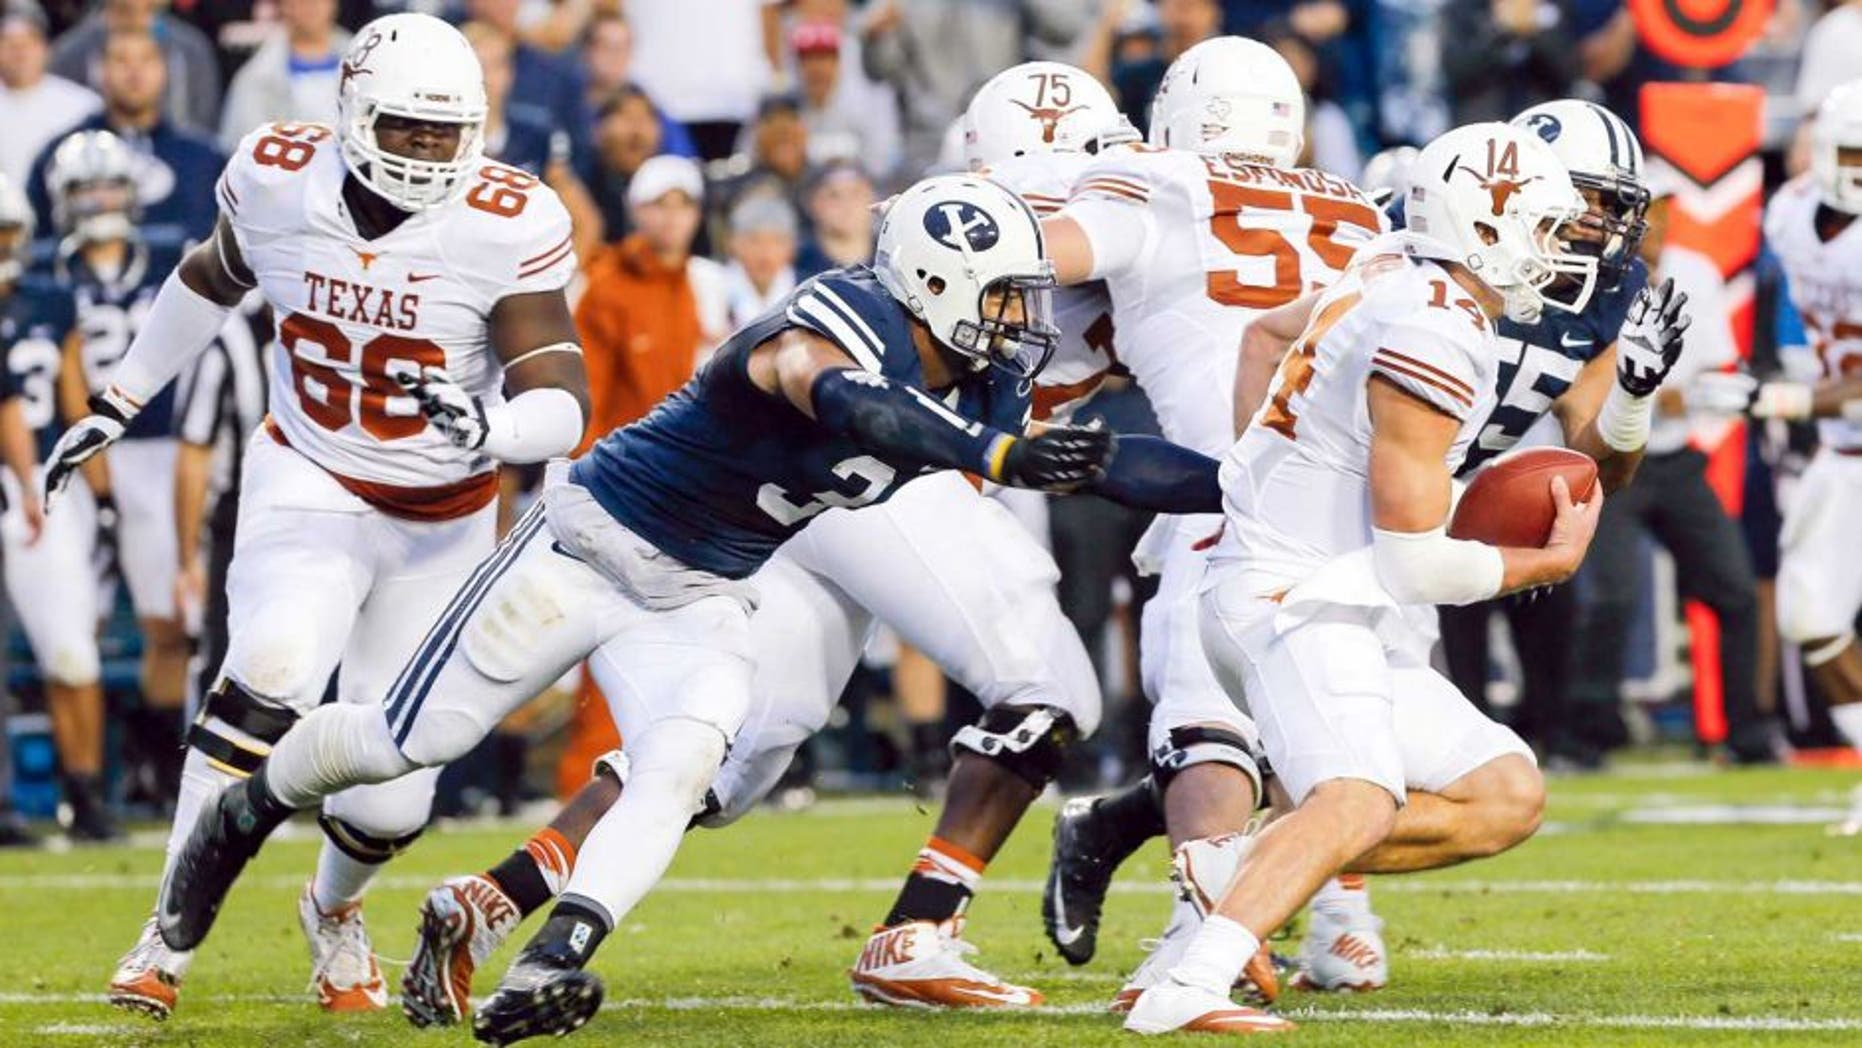 Sep 7, 2013; Provo, UT, USA; Texas Longhorns quarterback David Ash (14) tries to get away from Brigham Young Cougars linebacker Kyle Van Noy (3) during the first quarter at Lavell Edwards Stadium. Mandatory Credit: Chris Nicoll-USA TODAY Sports